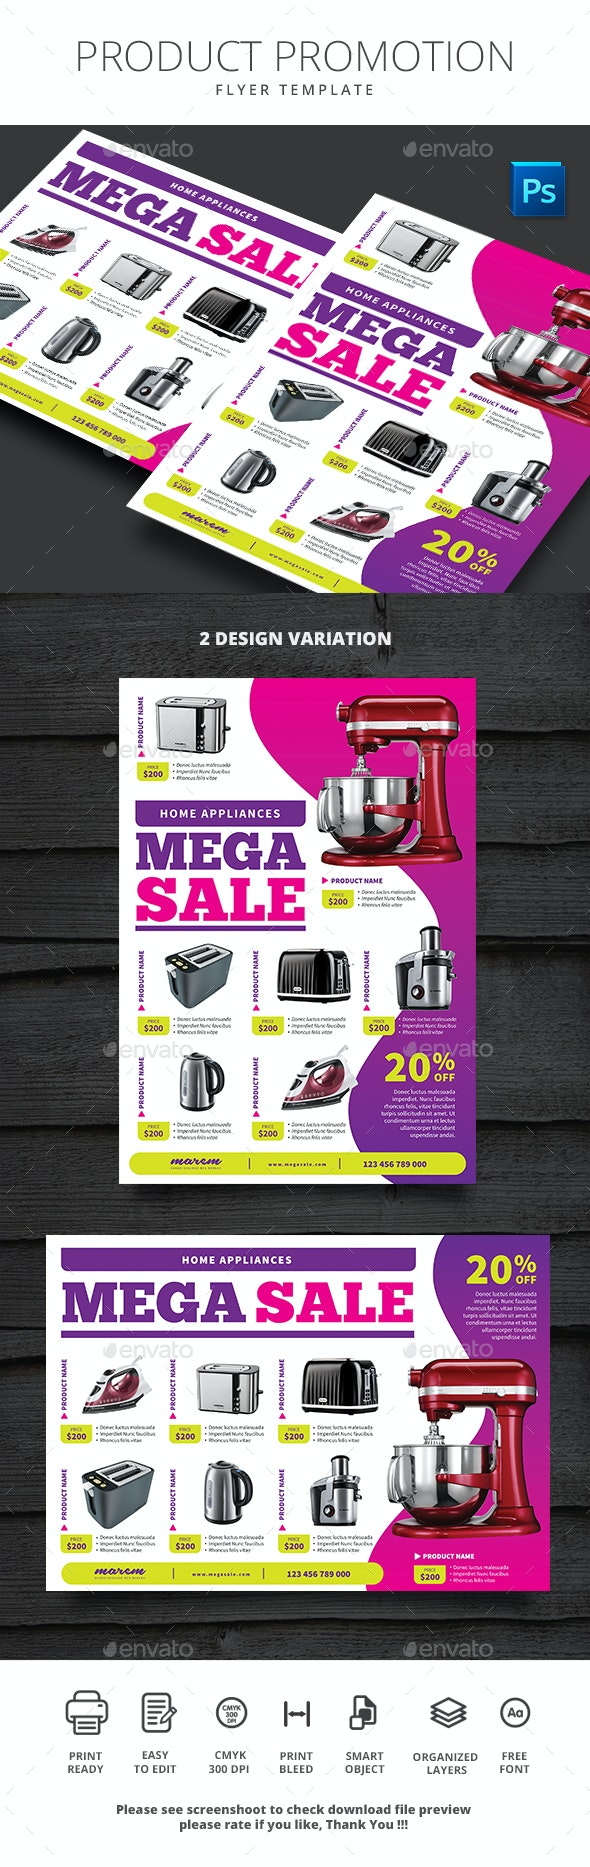 Product Promotion - Flyers Print Templates